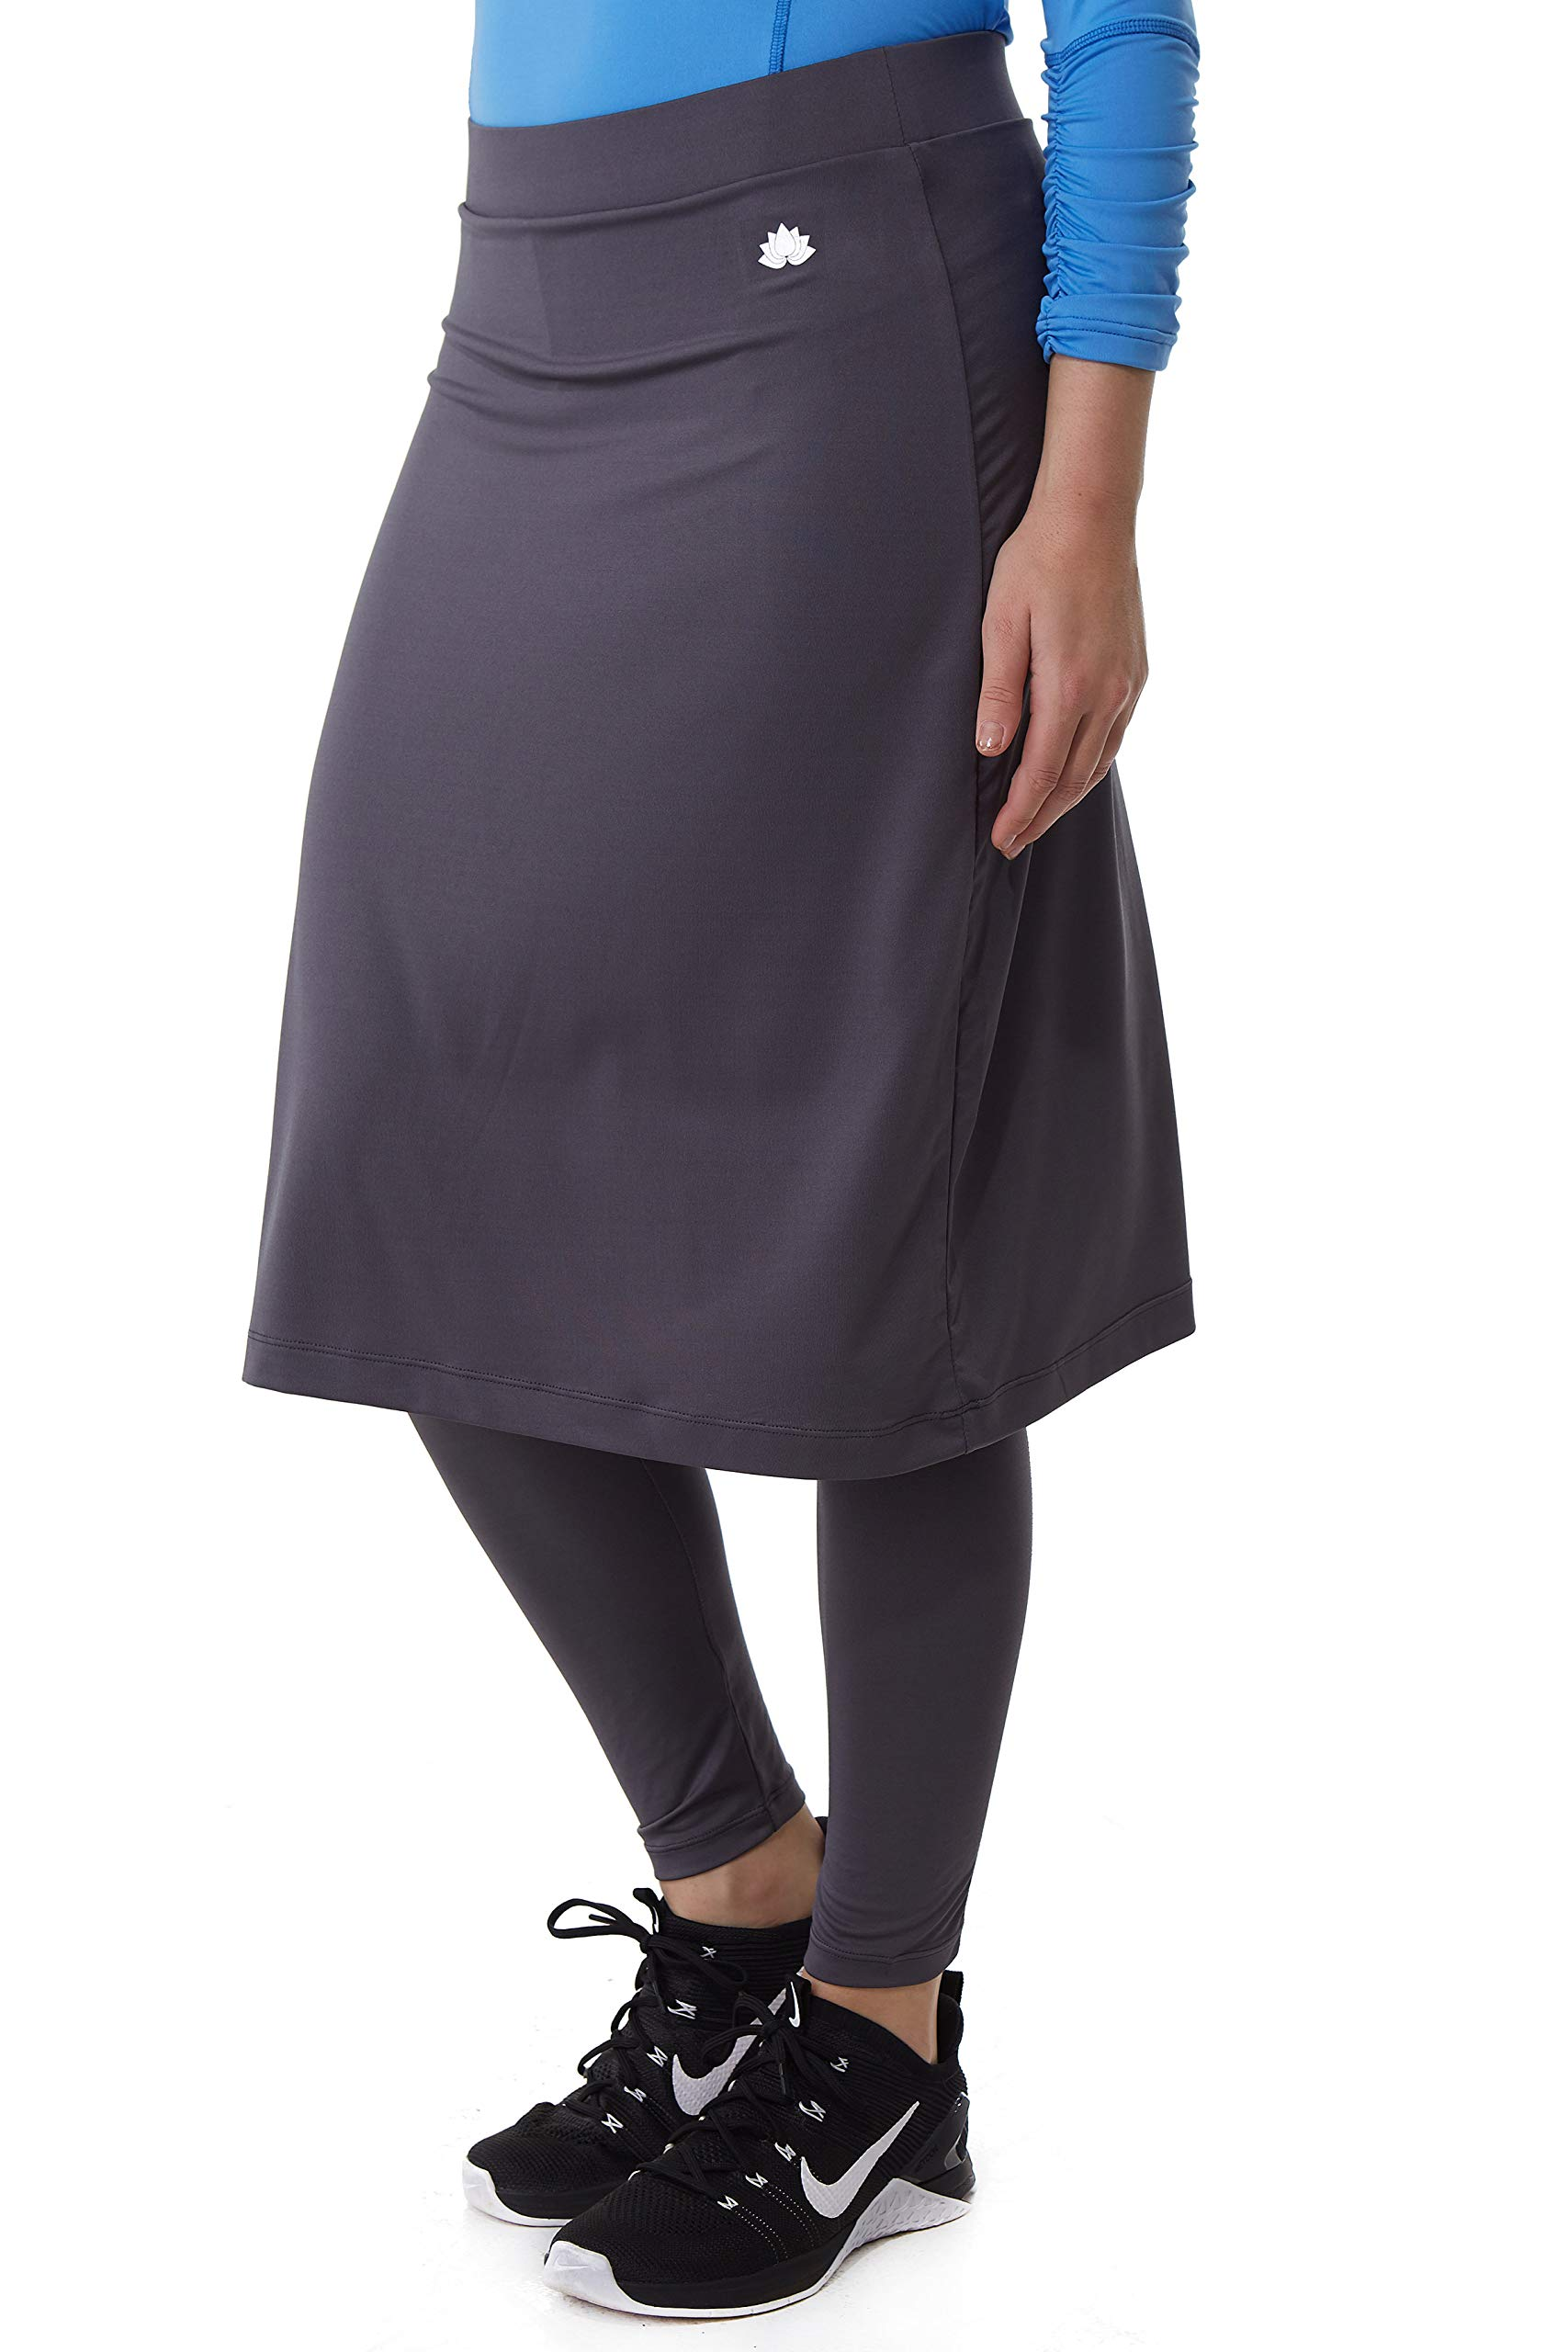 Snoga Athletics Active Midi Skirt with Ankle-Length Leggings - Smoke Grey, XS by Snoga Athletics